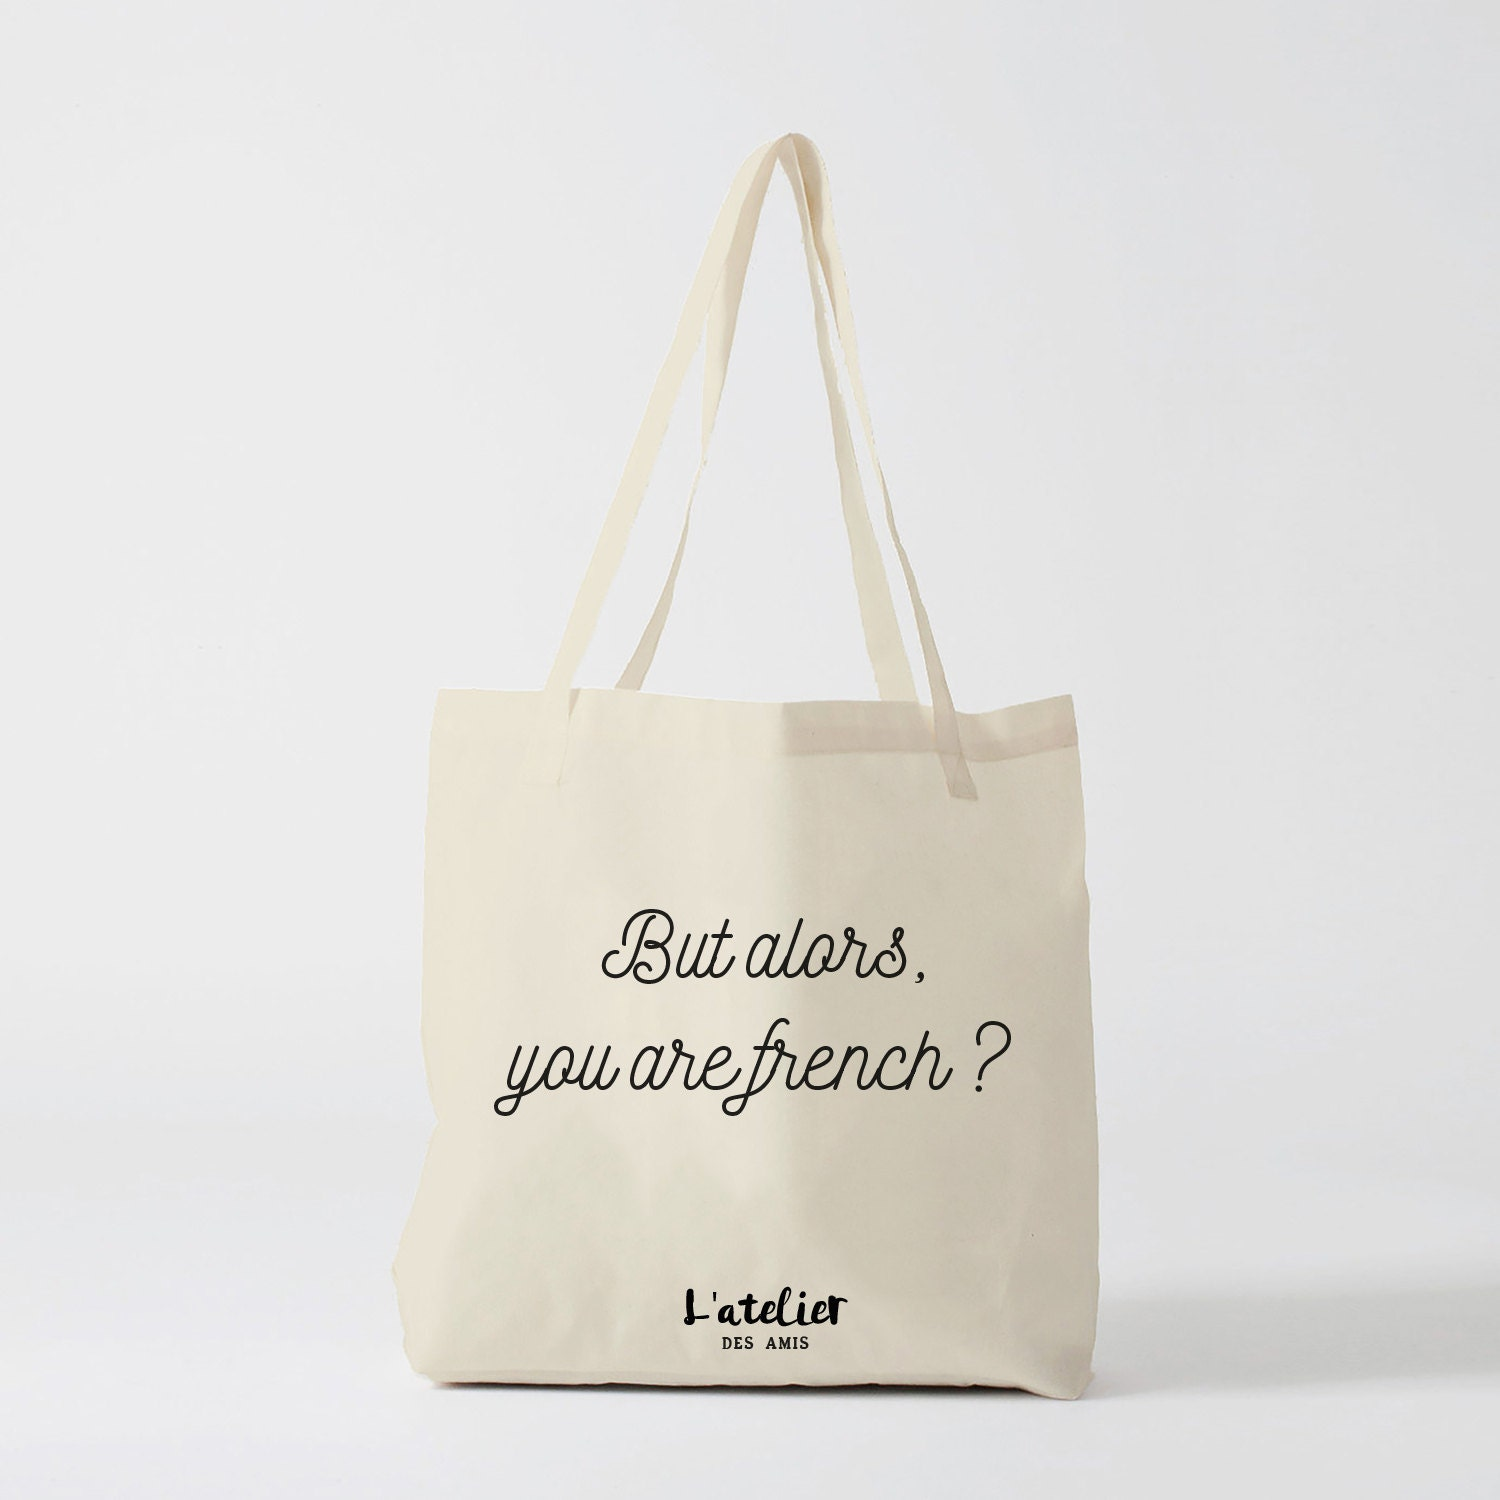 x252y tote bag message tote bag fun tote bag quote tote bag. Black Bedroom Furniture Sets. Home Design Ideas